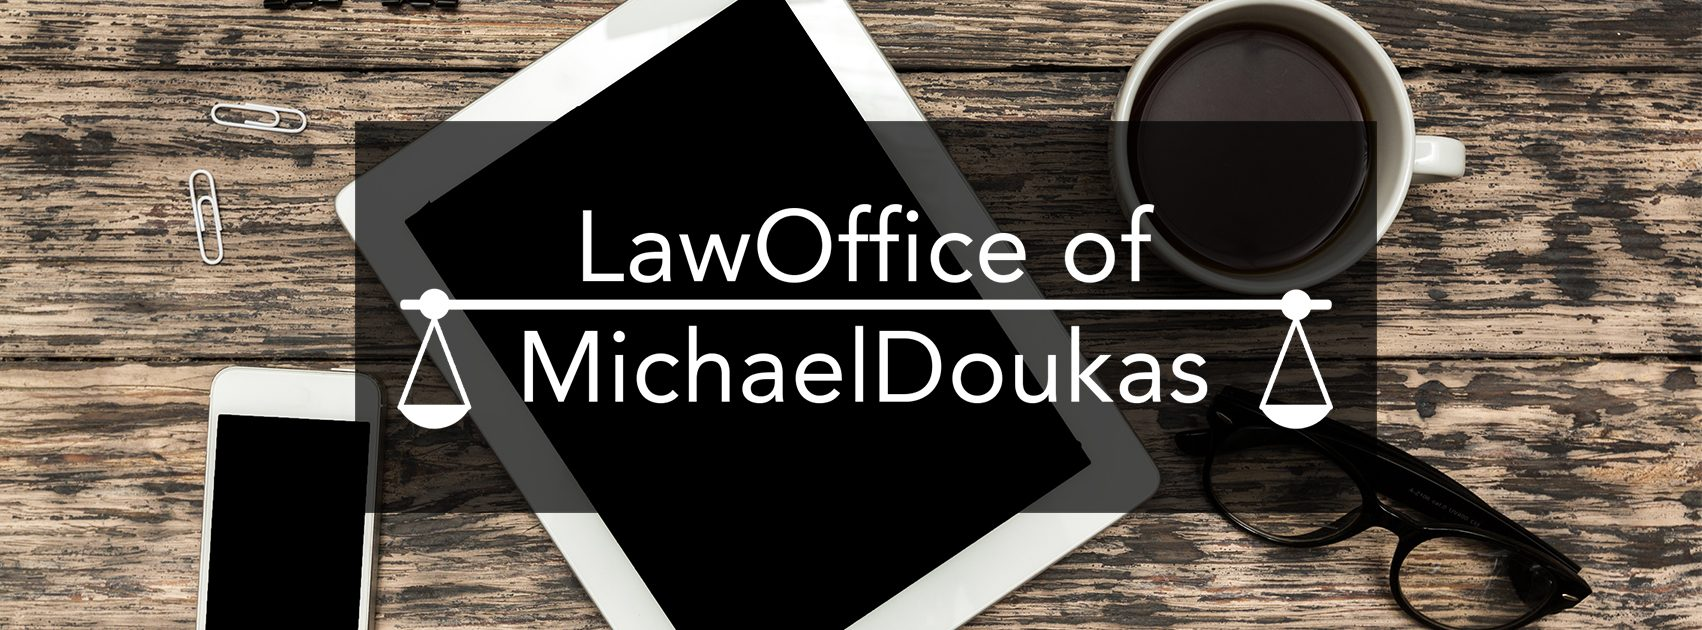 LawOffice of MichaelDoukas